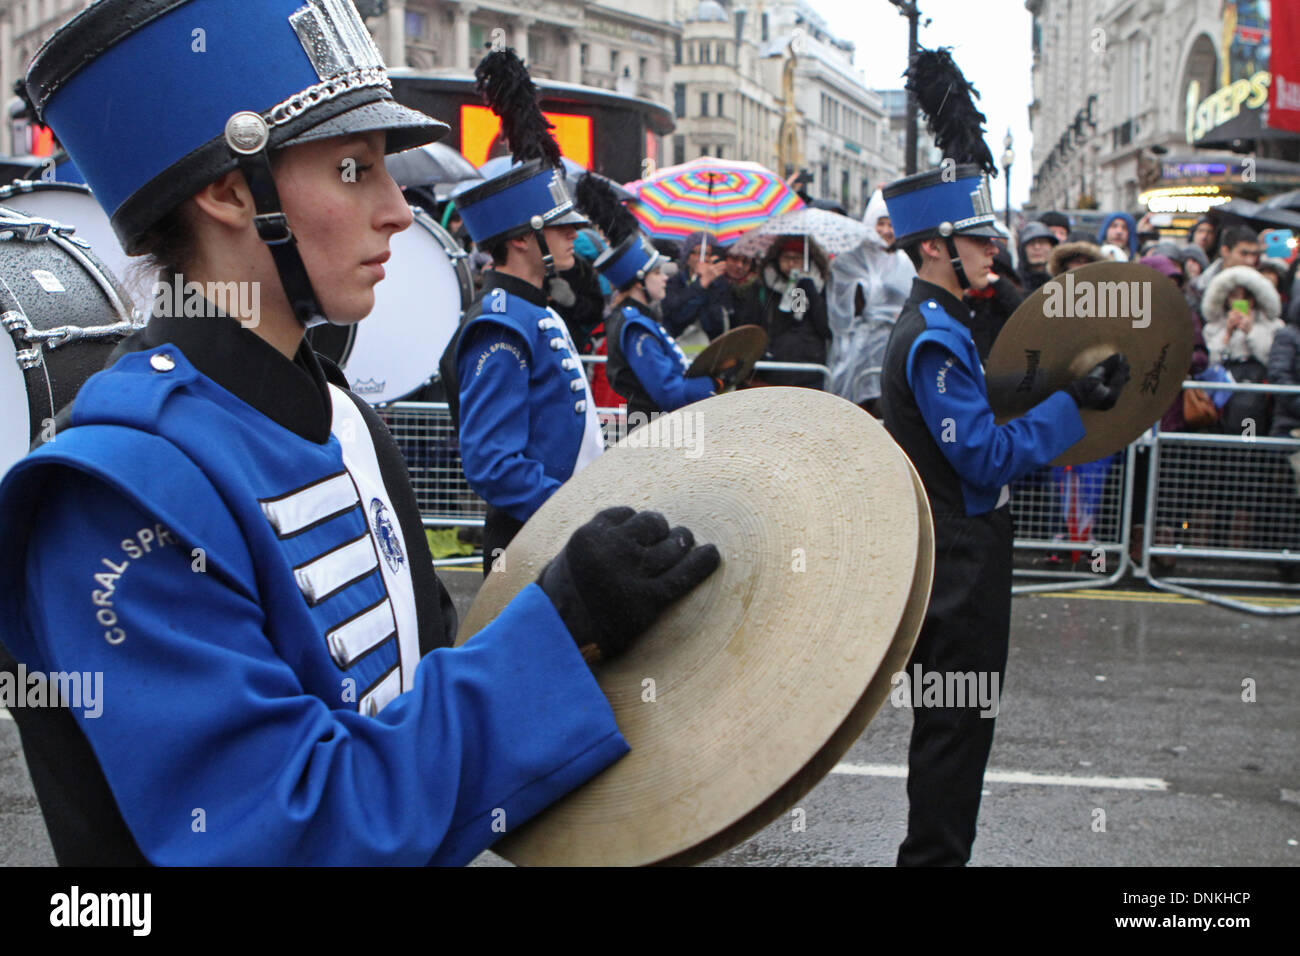 London,UK,1st January 2014,J.P Taravella high school from Florida playing at the London's New Year's Day Parade Stock Photo